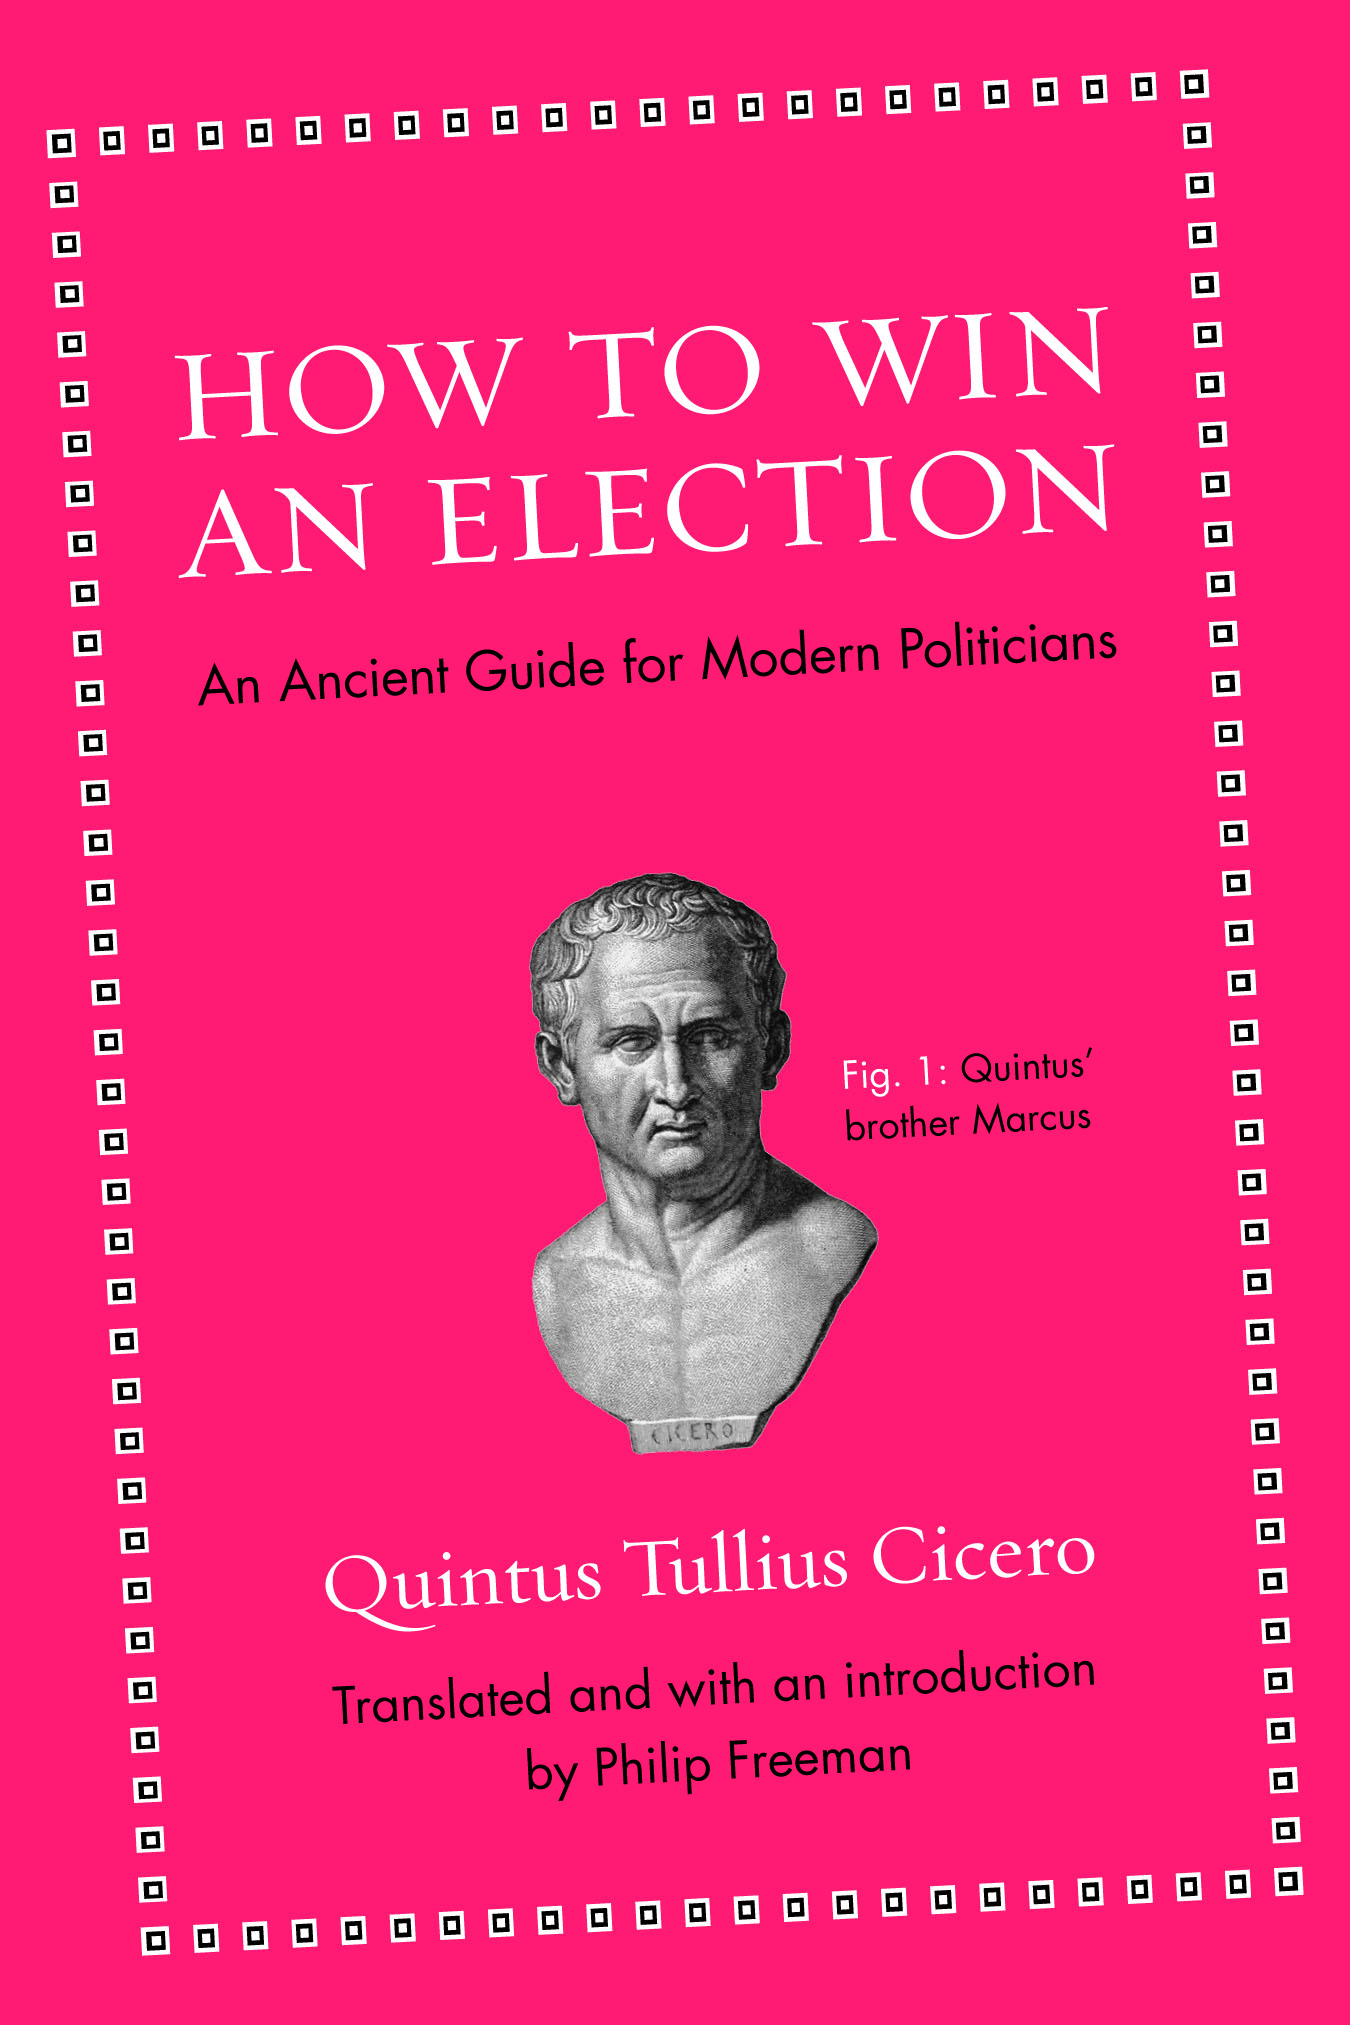 Cover Art For How To Win An Election Book